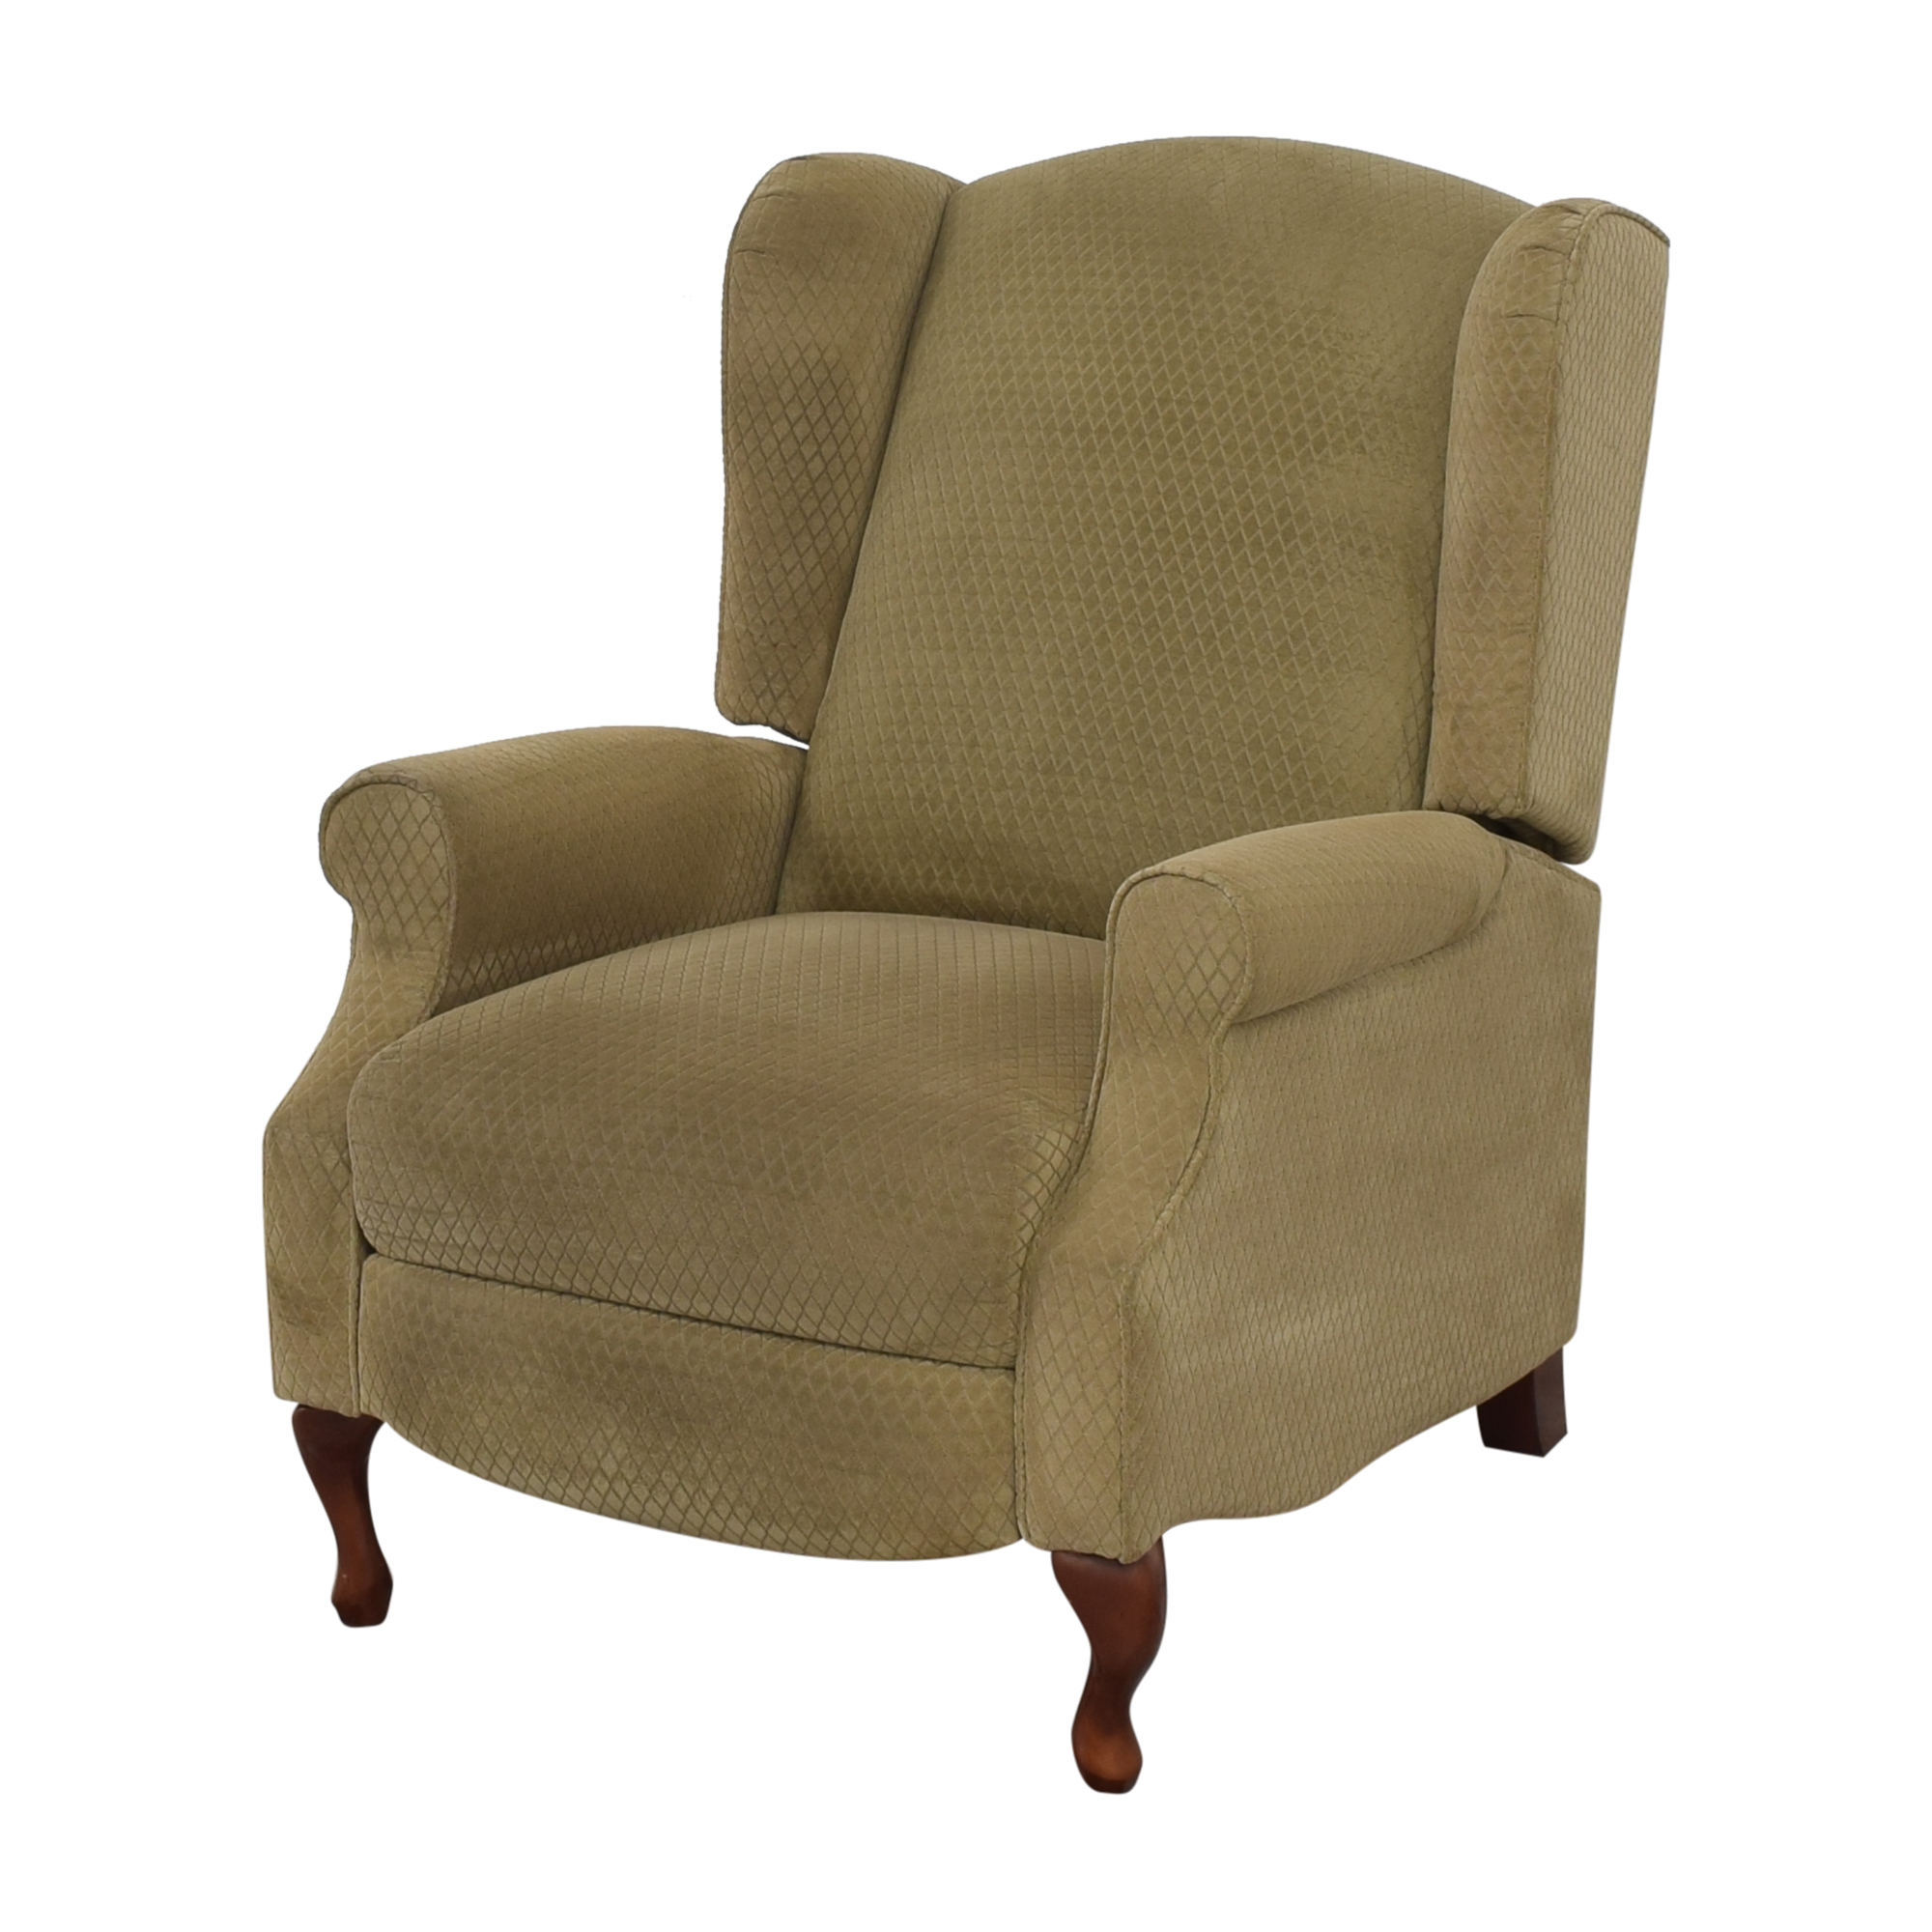 Macy's Edie Pushback Recliner / Recliners